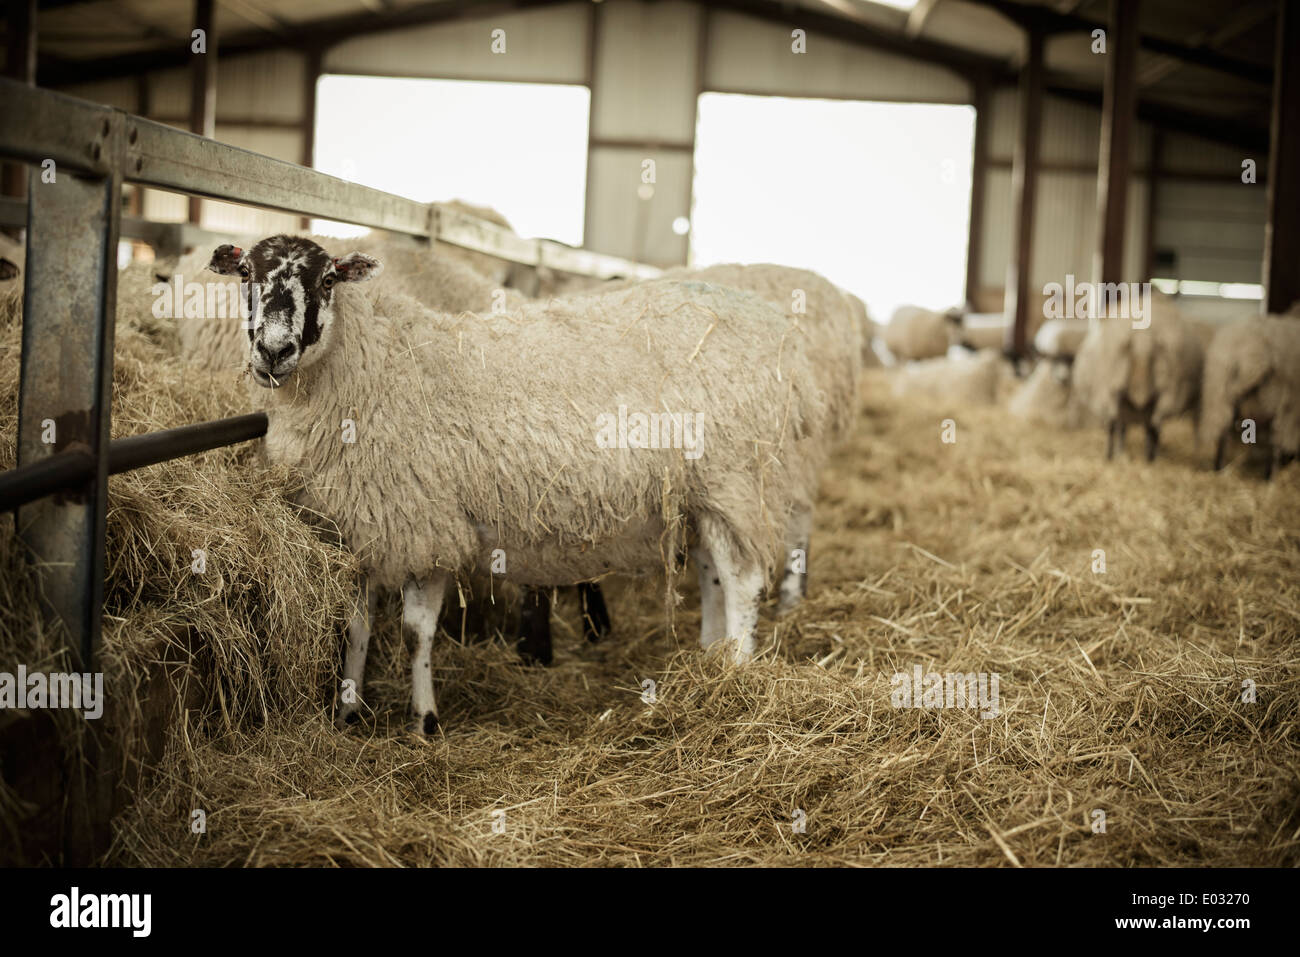 Sheep in a barn during lambing time. - Stock Image